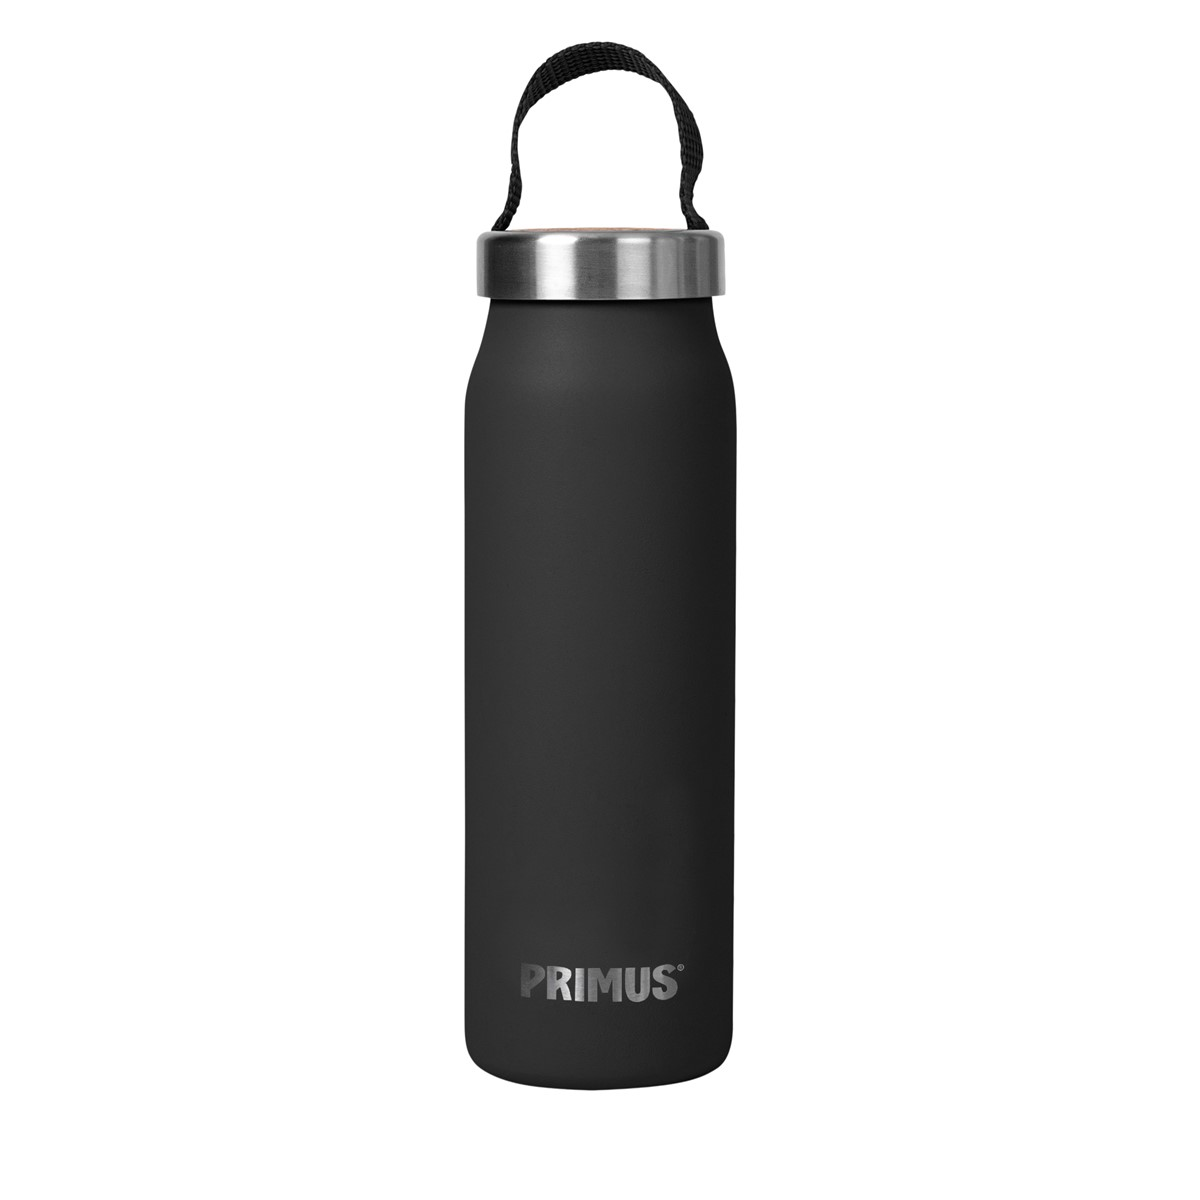 Klunken Vacuum Stainless Steel Bottle in Black